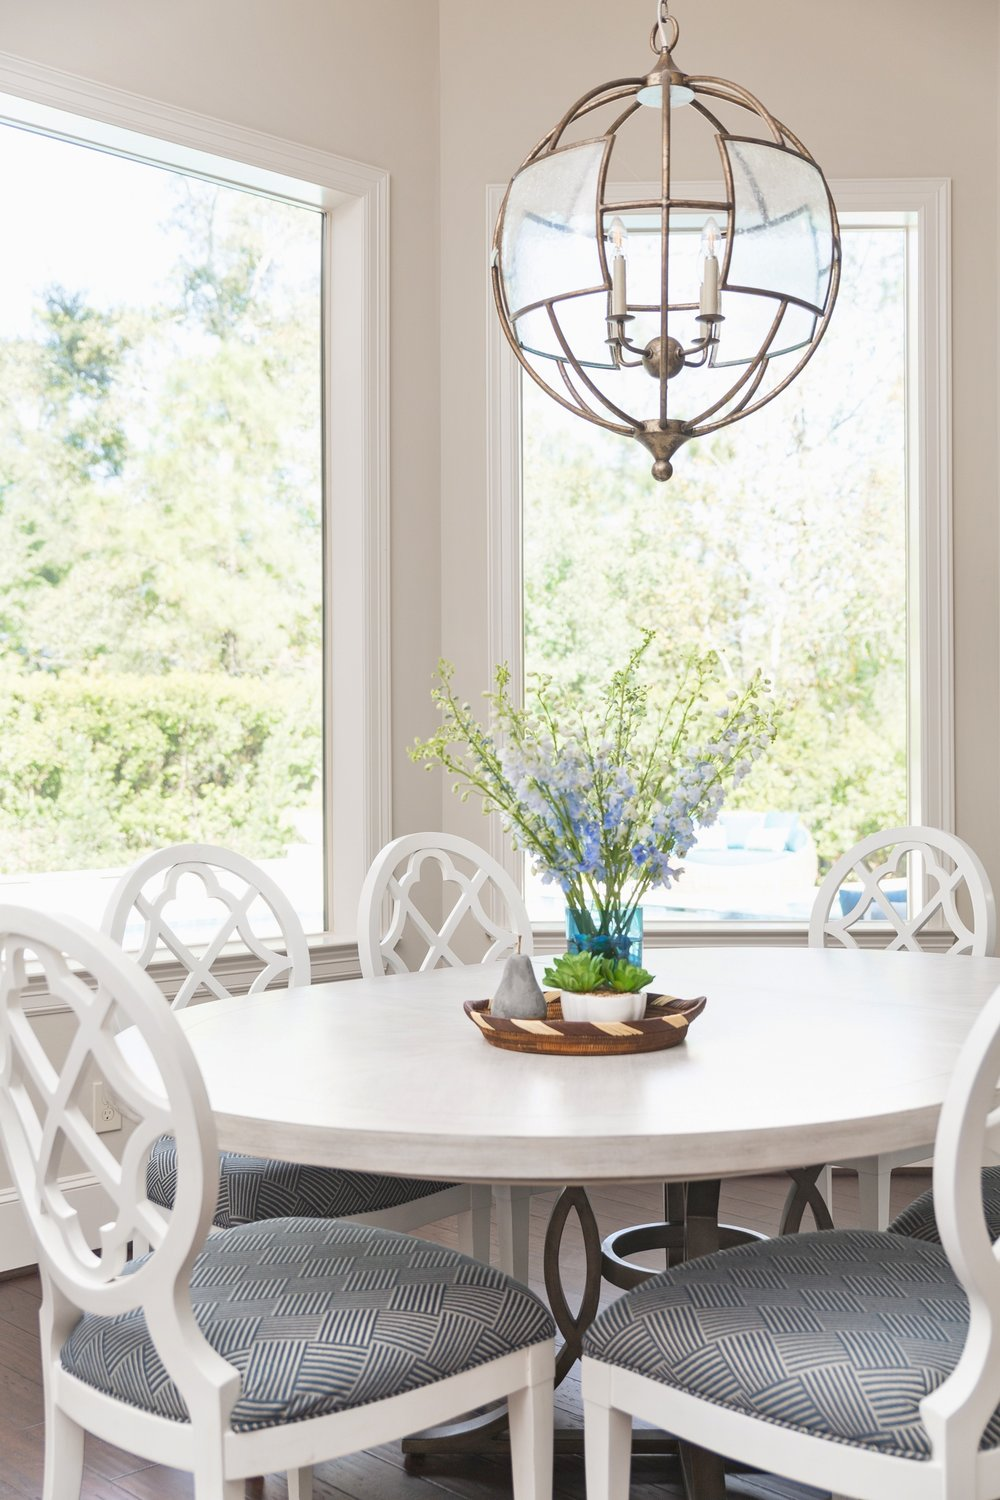 Project Reveal - Family room, backyard oasis, breakfast room | Carla Aston, Designer | Colleen Scott, Photographer | #breakfastroom #breakfastroomideas #diningtable